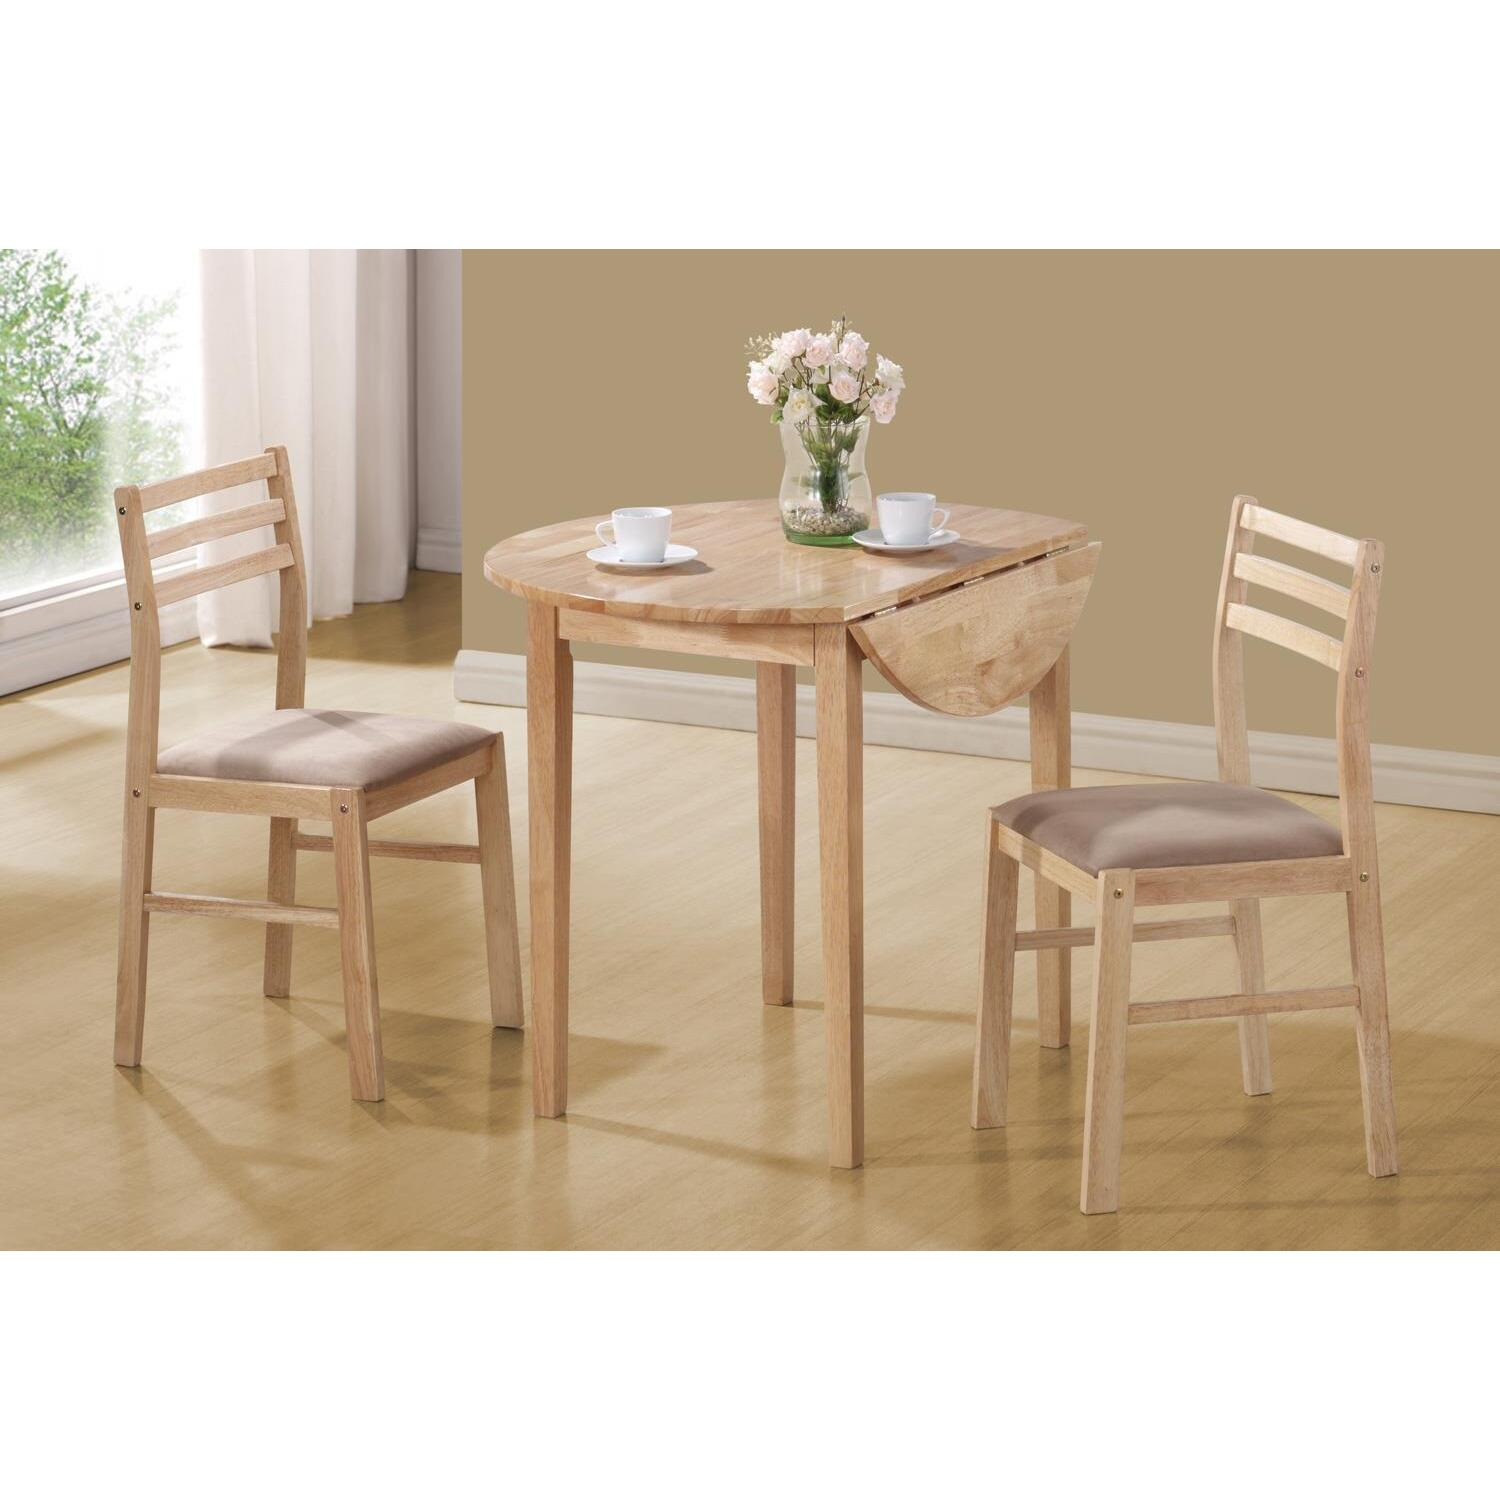 3 piece dining set ojcommerce - Small space dinette sets set ...